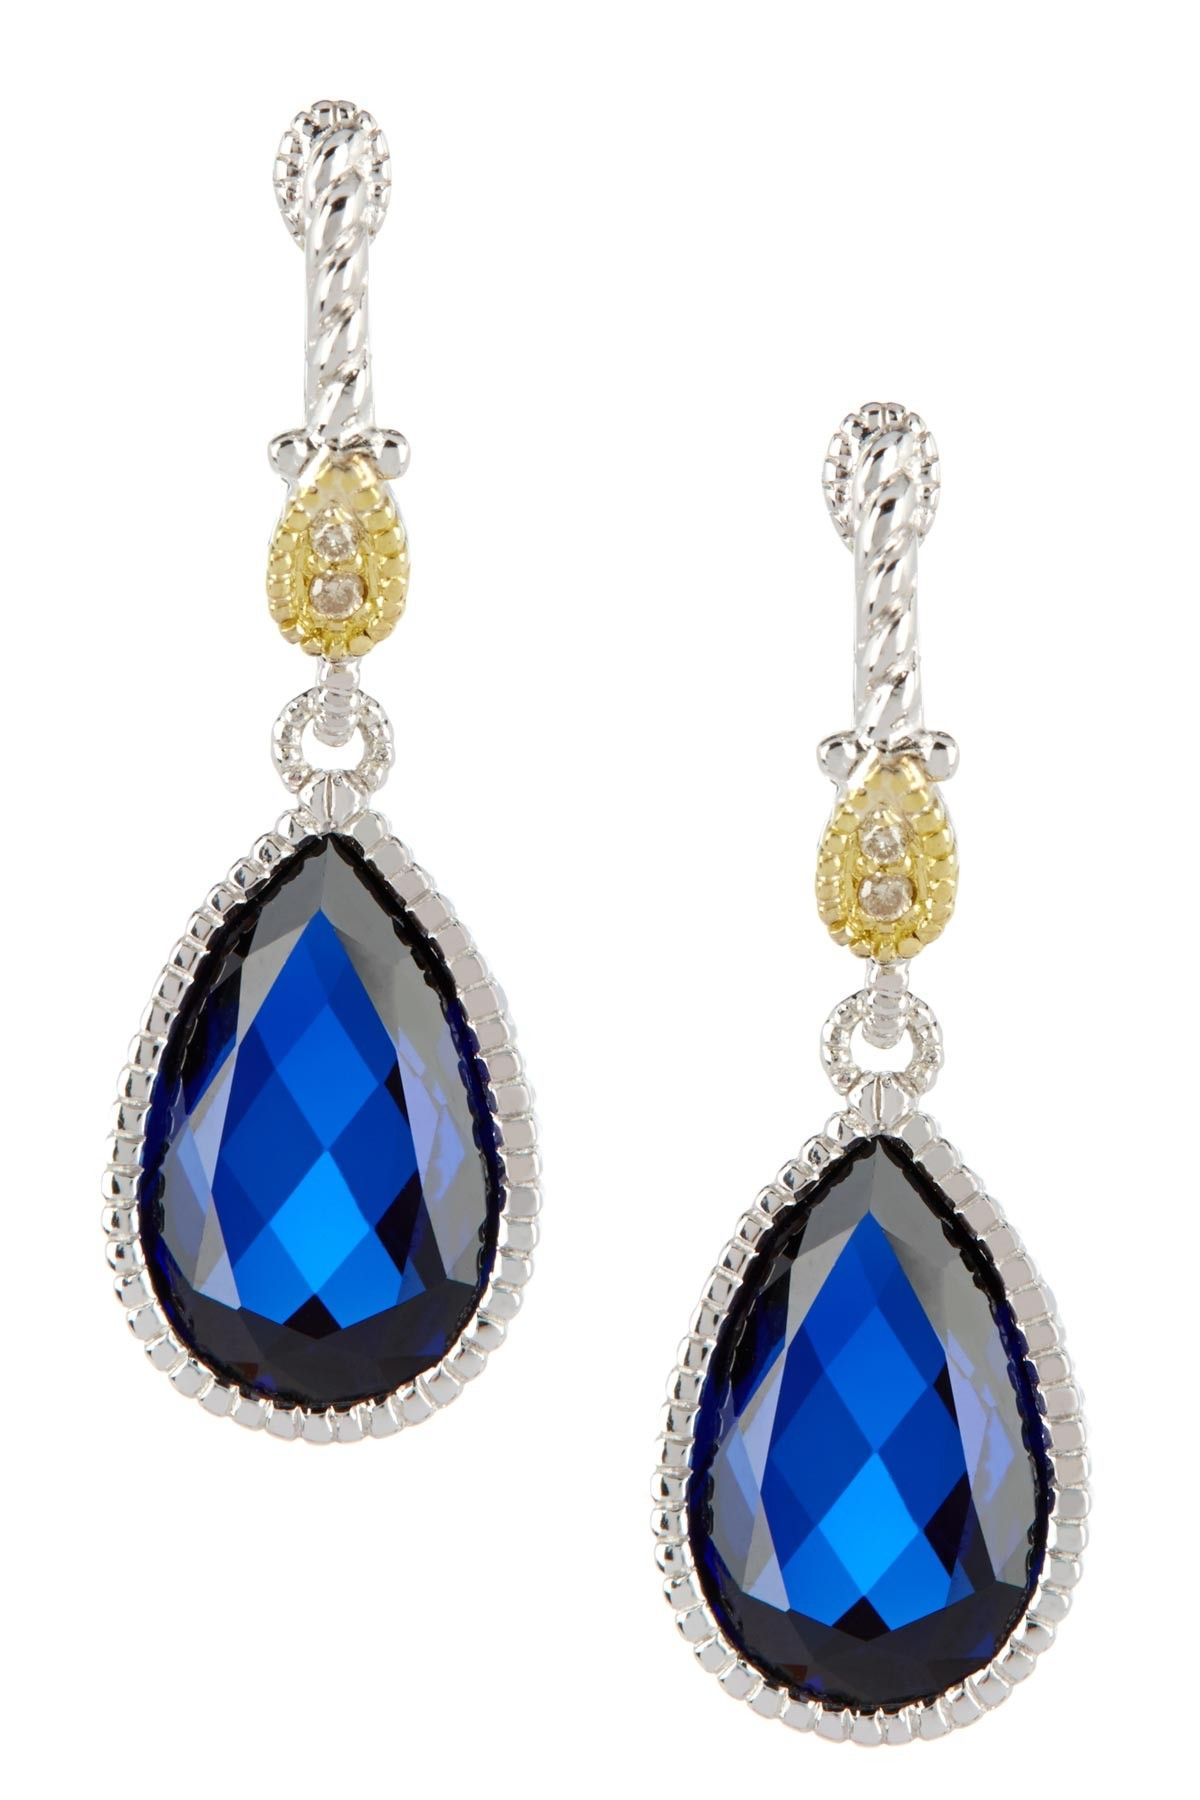 18K Gold and Diamond Accented Silver Marina Blue Corundum Drop Earrings